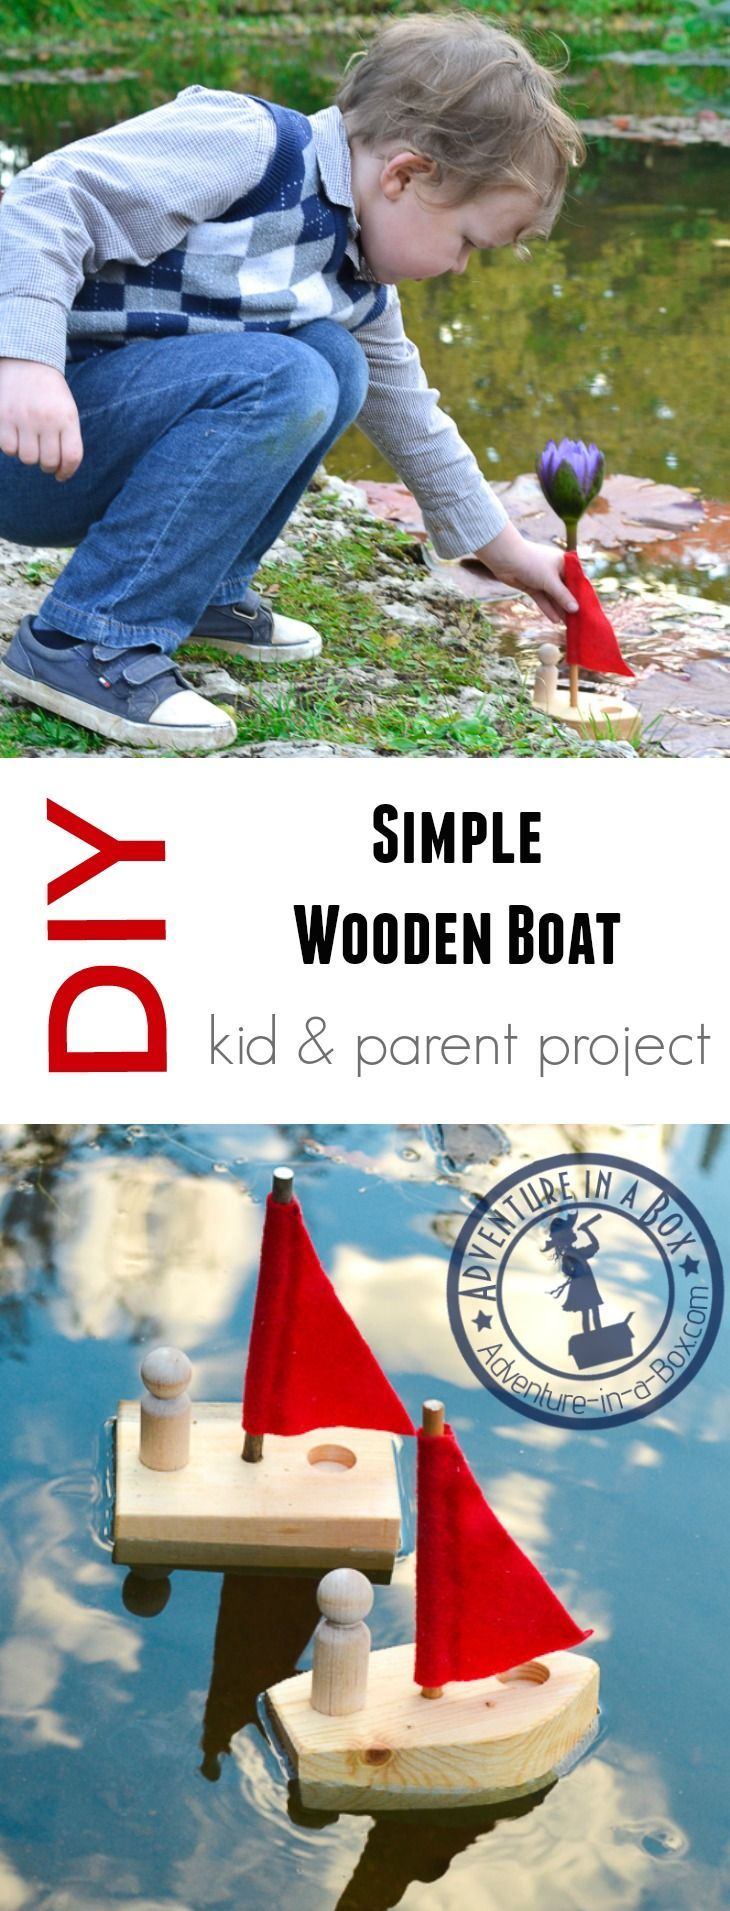 DIY Woodworking Ideas DIY Simple Wooden Toy Boat: Woodworking for Kids